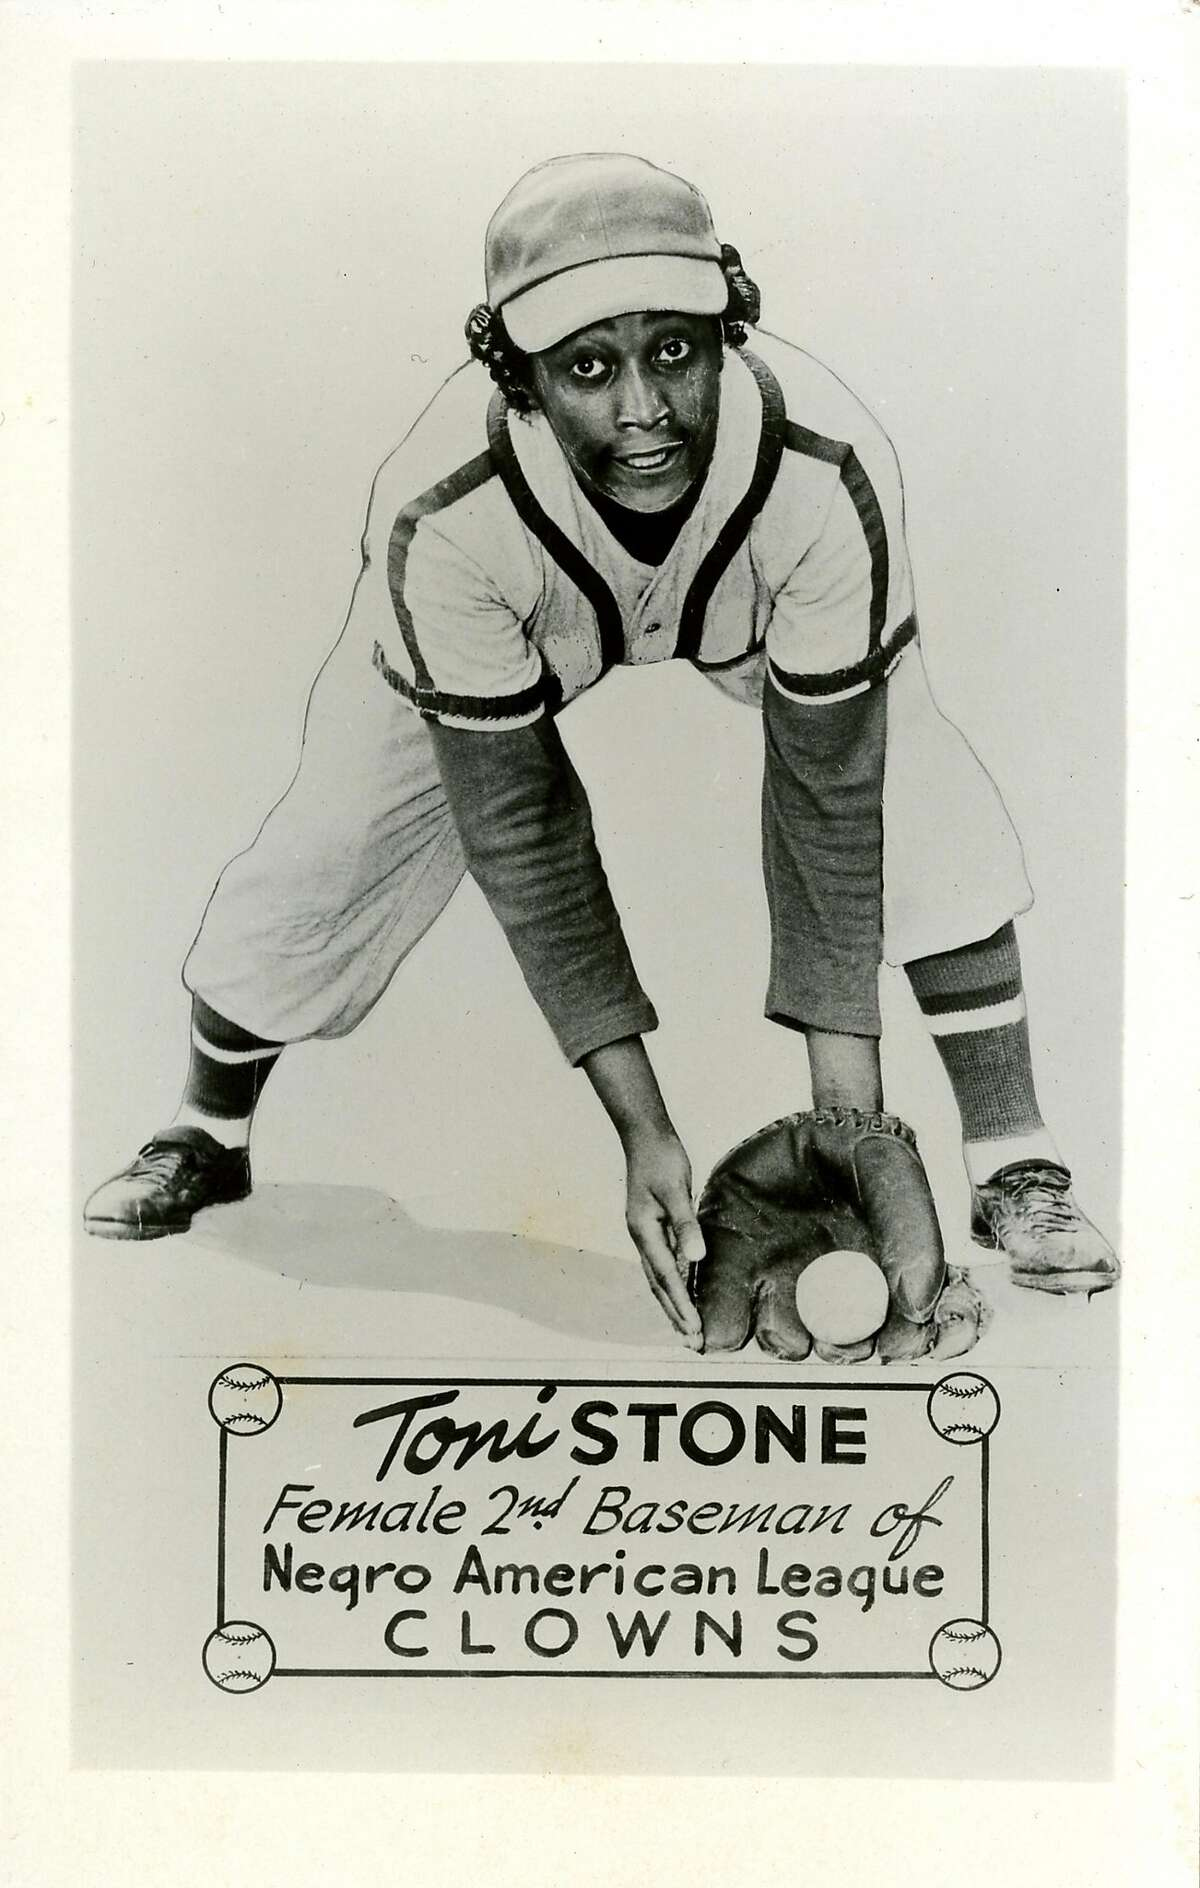 Toni Stone, the first female baseball player in the Negro Leagues.